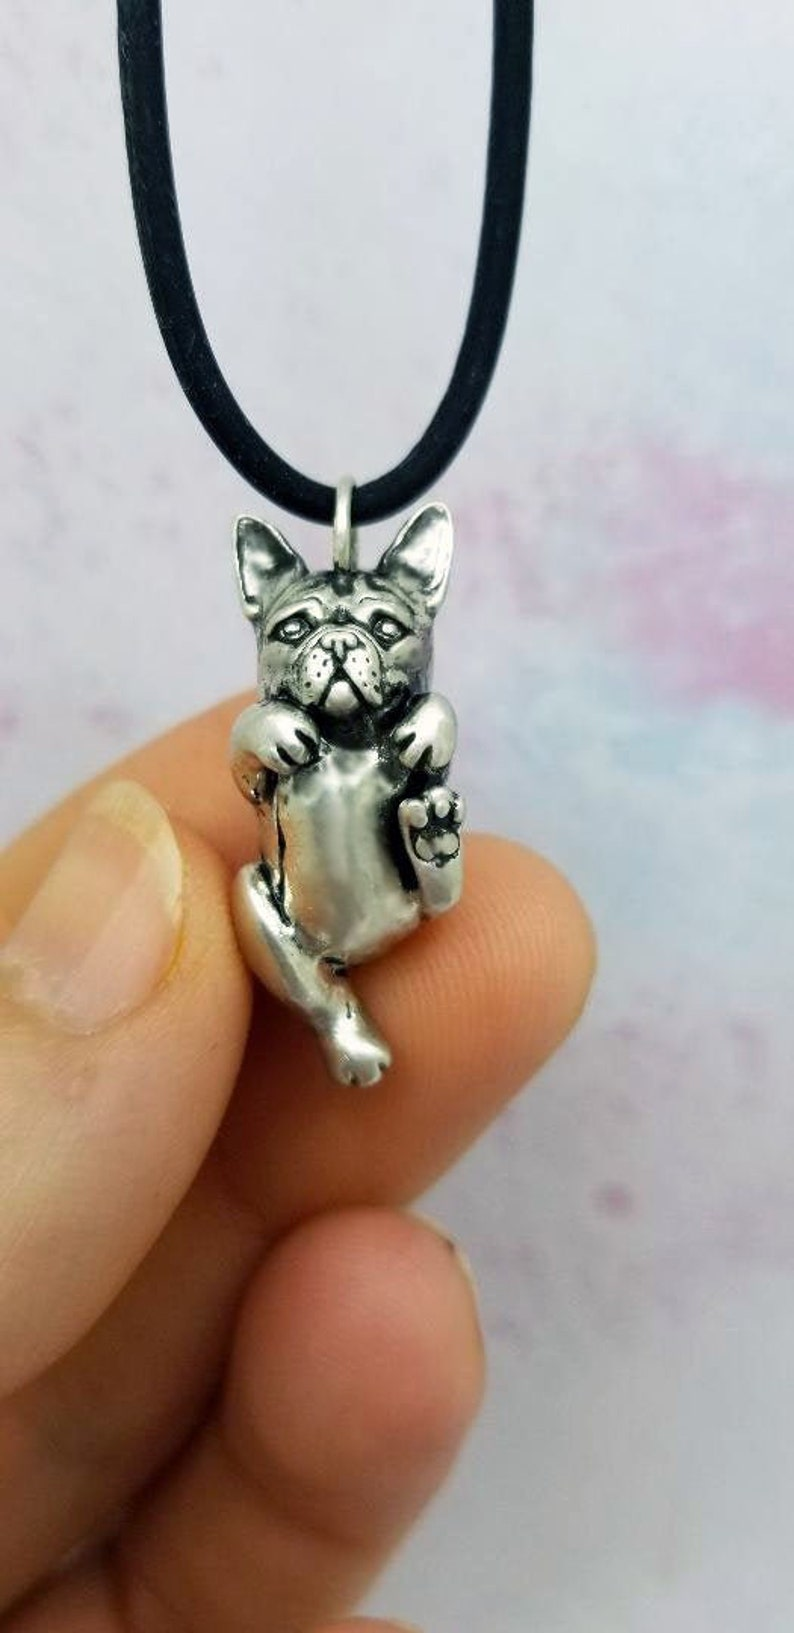 Made in USA Sterling Silver French Bulldog Pendant Necklace Gift- 1 inch tall 100/% recycled metal 3d sculpted